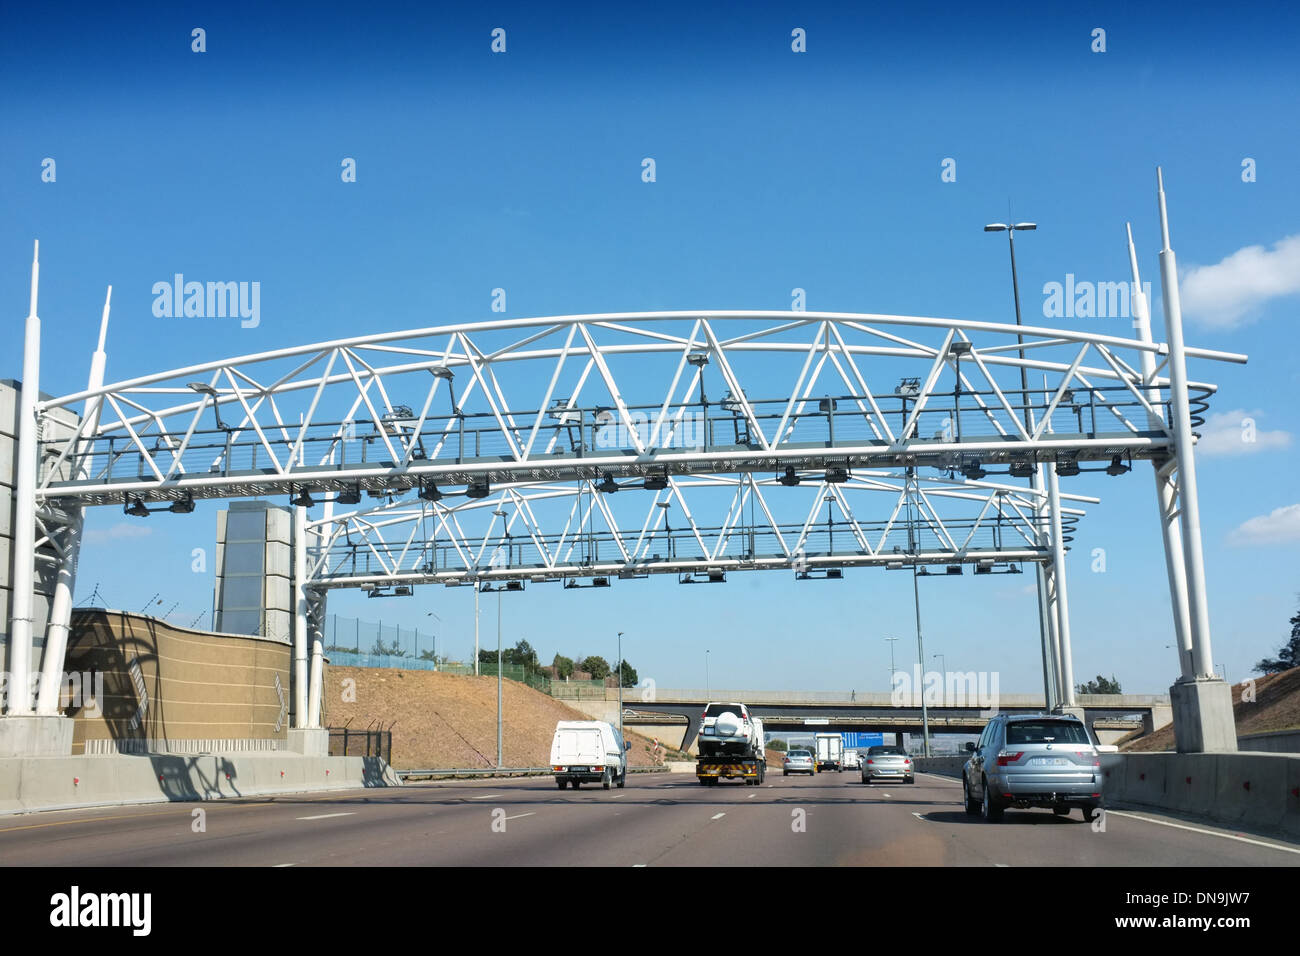 E Toll Stock Photos Images Alamy Gates On A Highway In Johannesburg South Africa Image